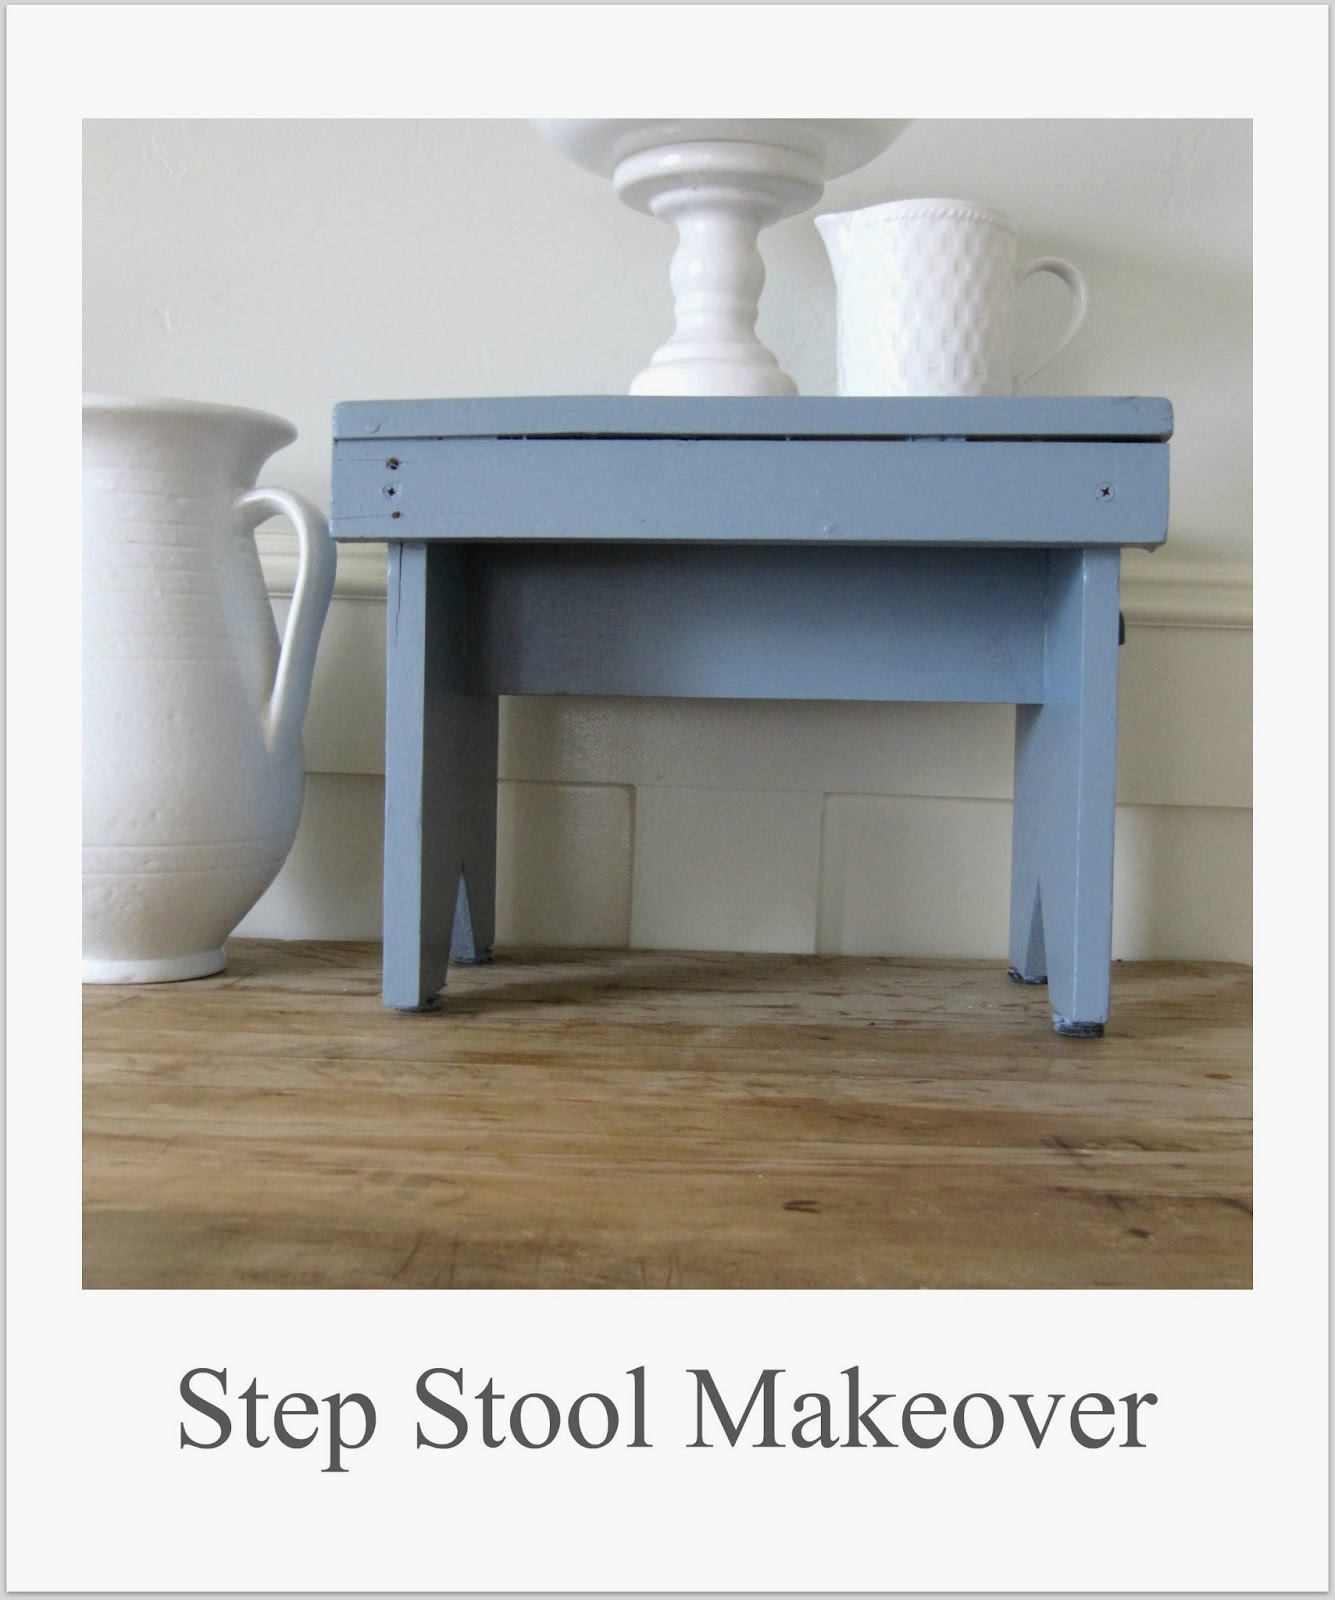 http://thewickerhouse.blogspot.com/2014/01/step-stool-makeover.html